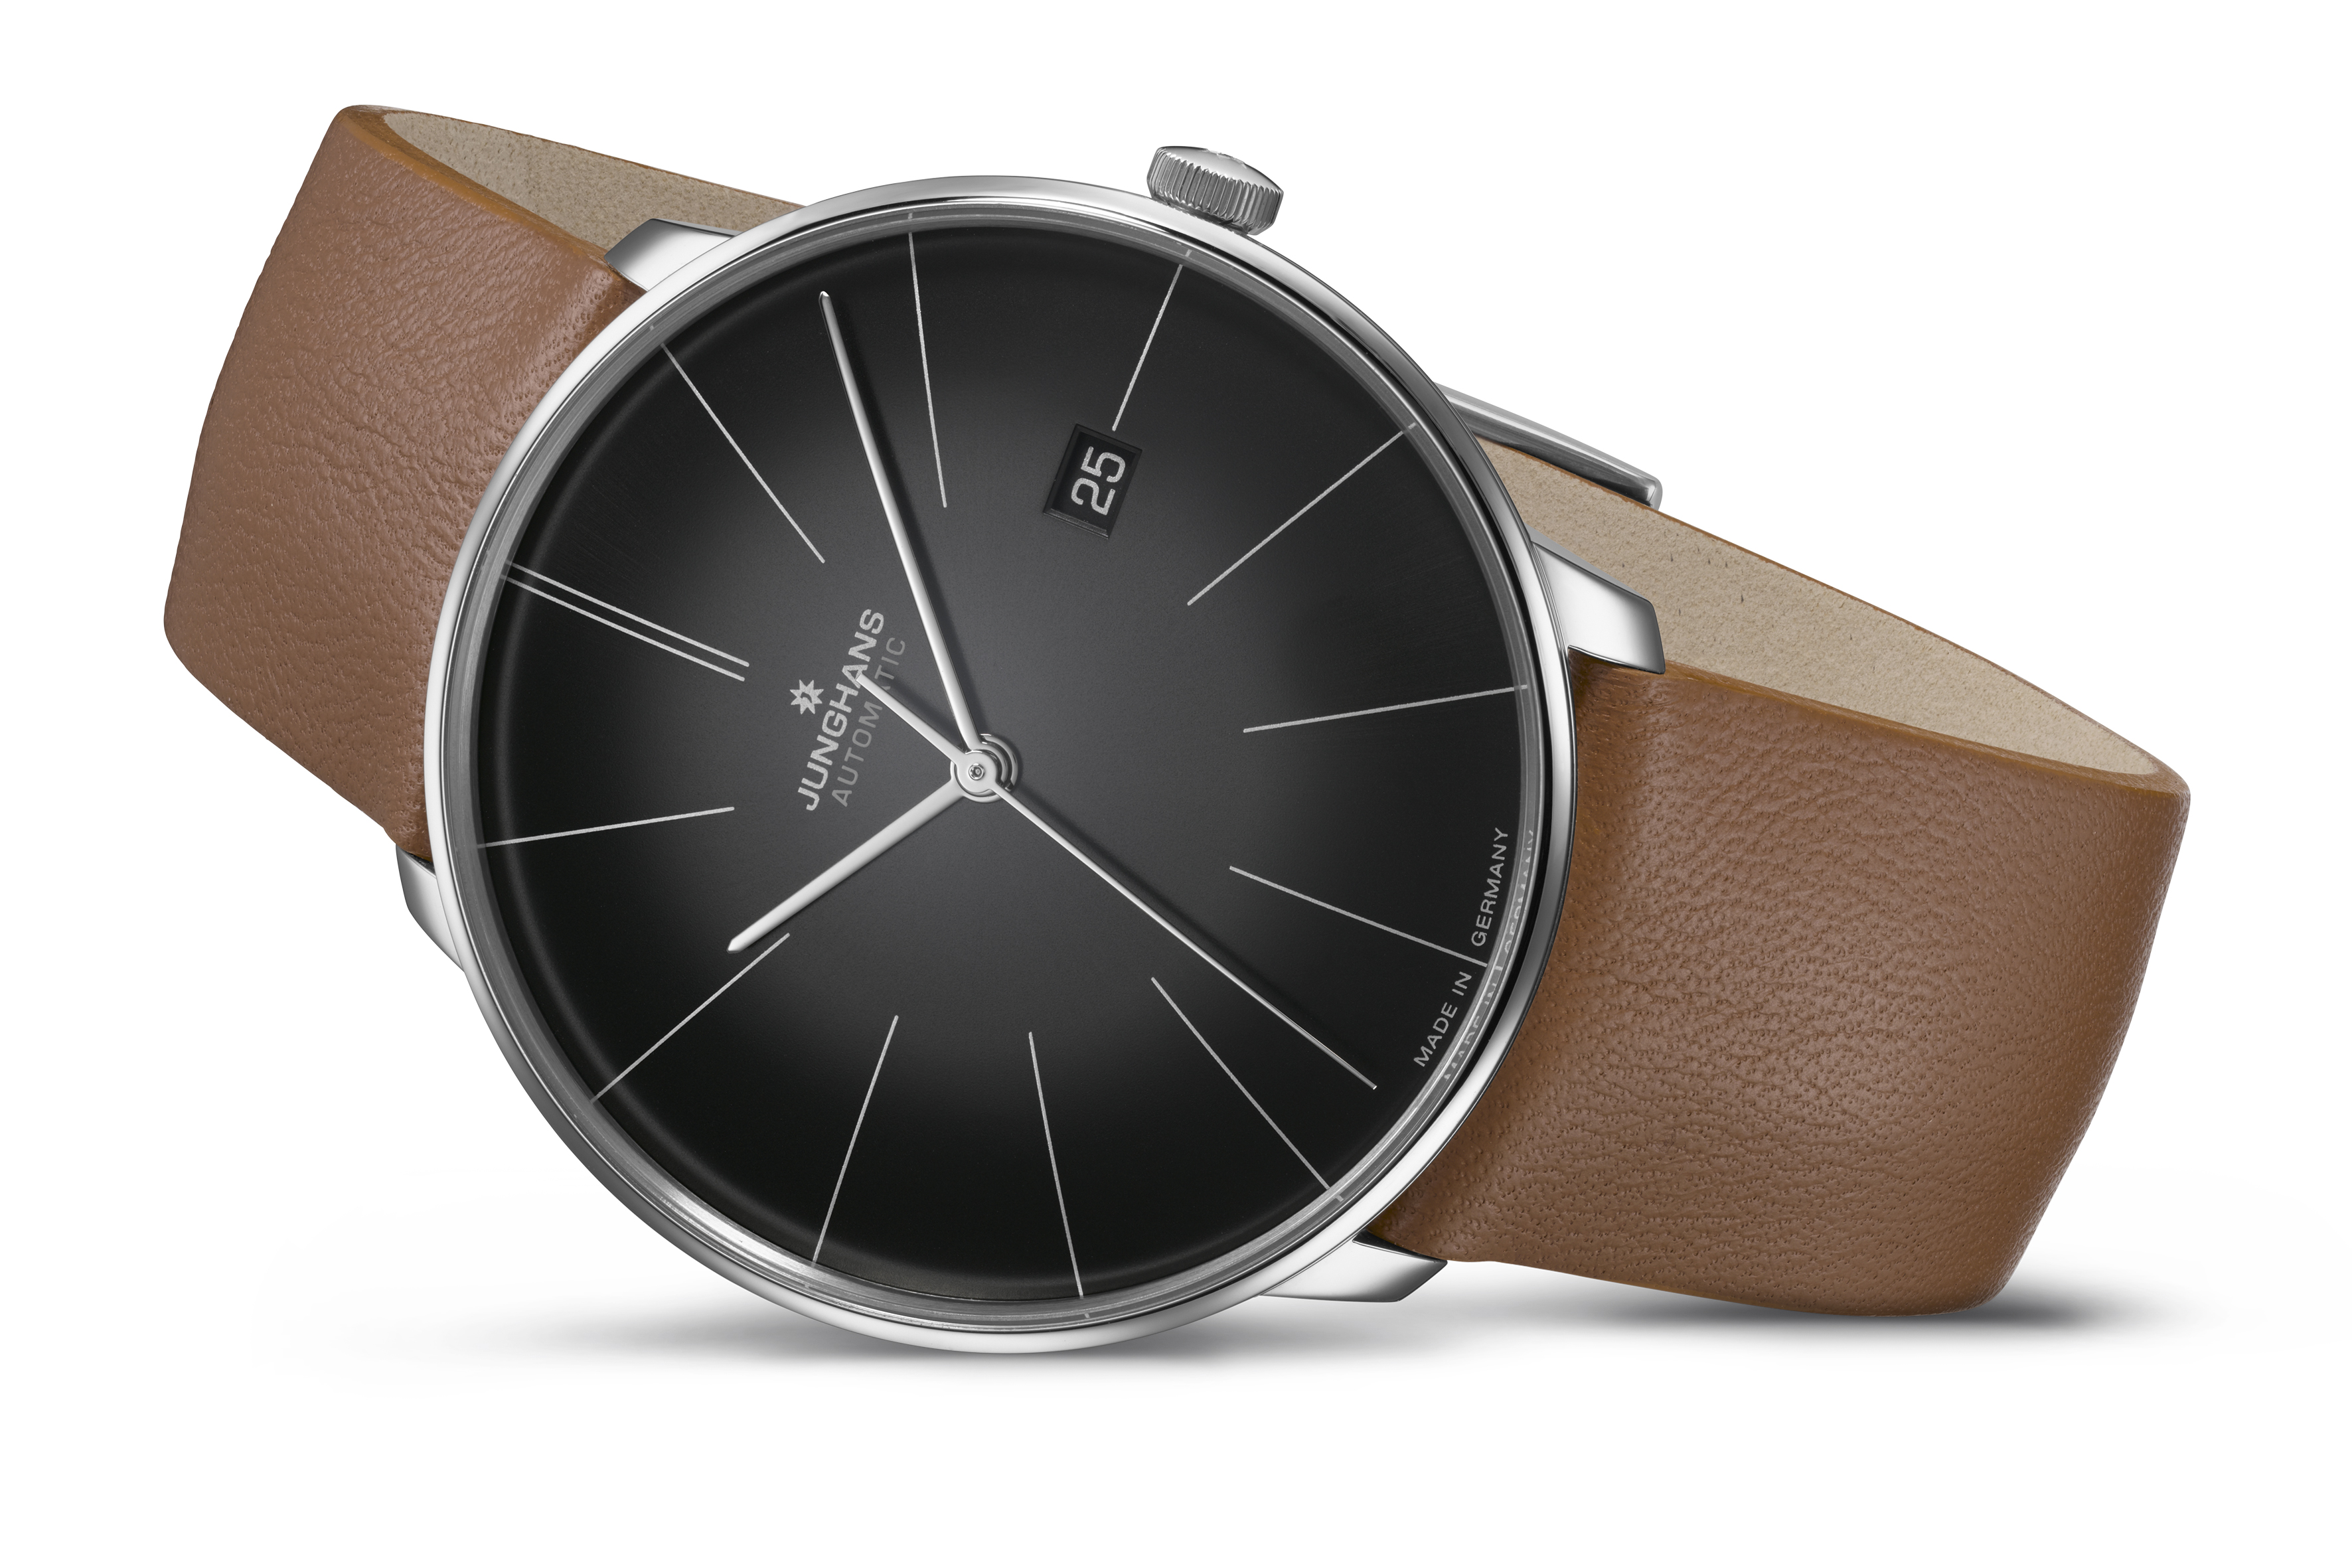 Meister fein Automatic 27/4154.00